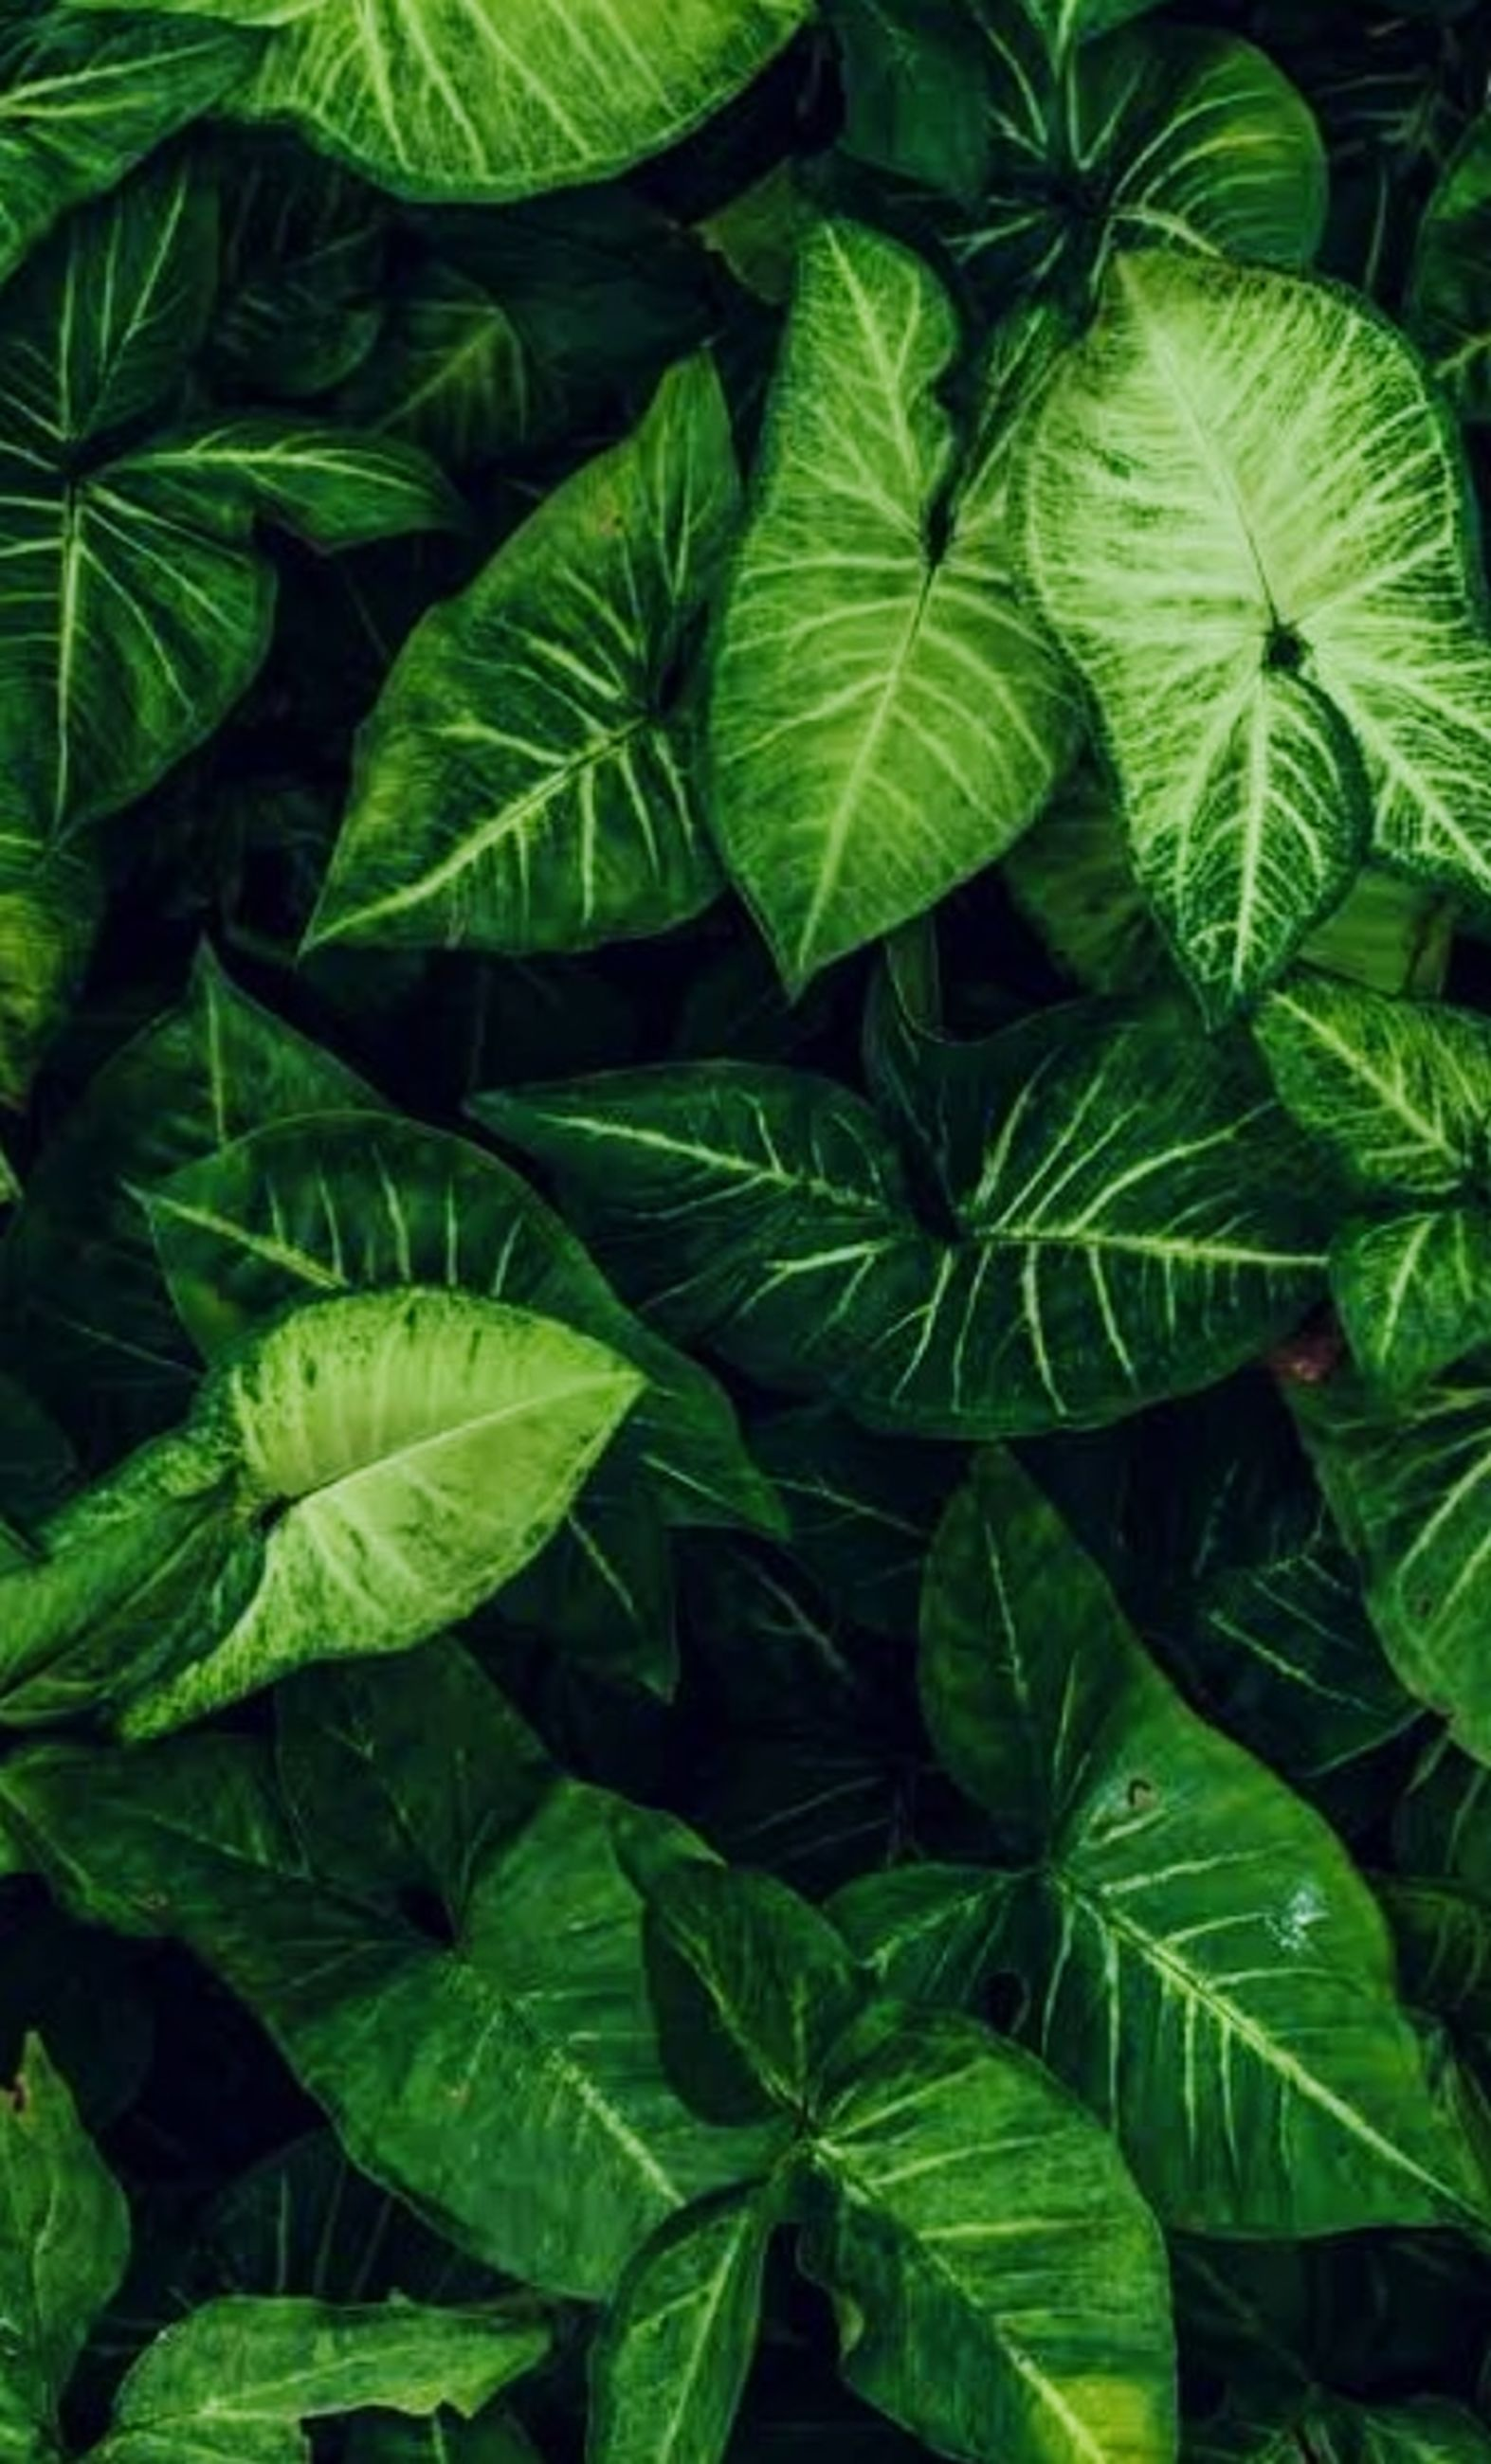 leaf, plant part, green, plant, growth, backgrounds, full frame, nature, rainforest, no people, beauty in nature, flower, jungle, close-up, food and drink, freshness, shrub, food, tree, leaf vein, herb, outdoors, foliage, lush foliage, day, botany, pattern